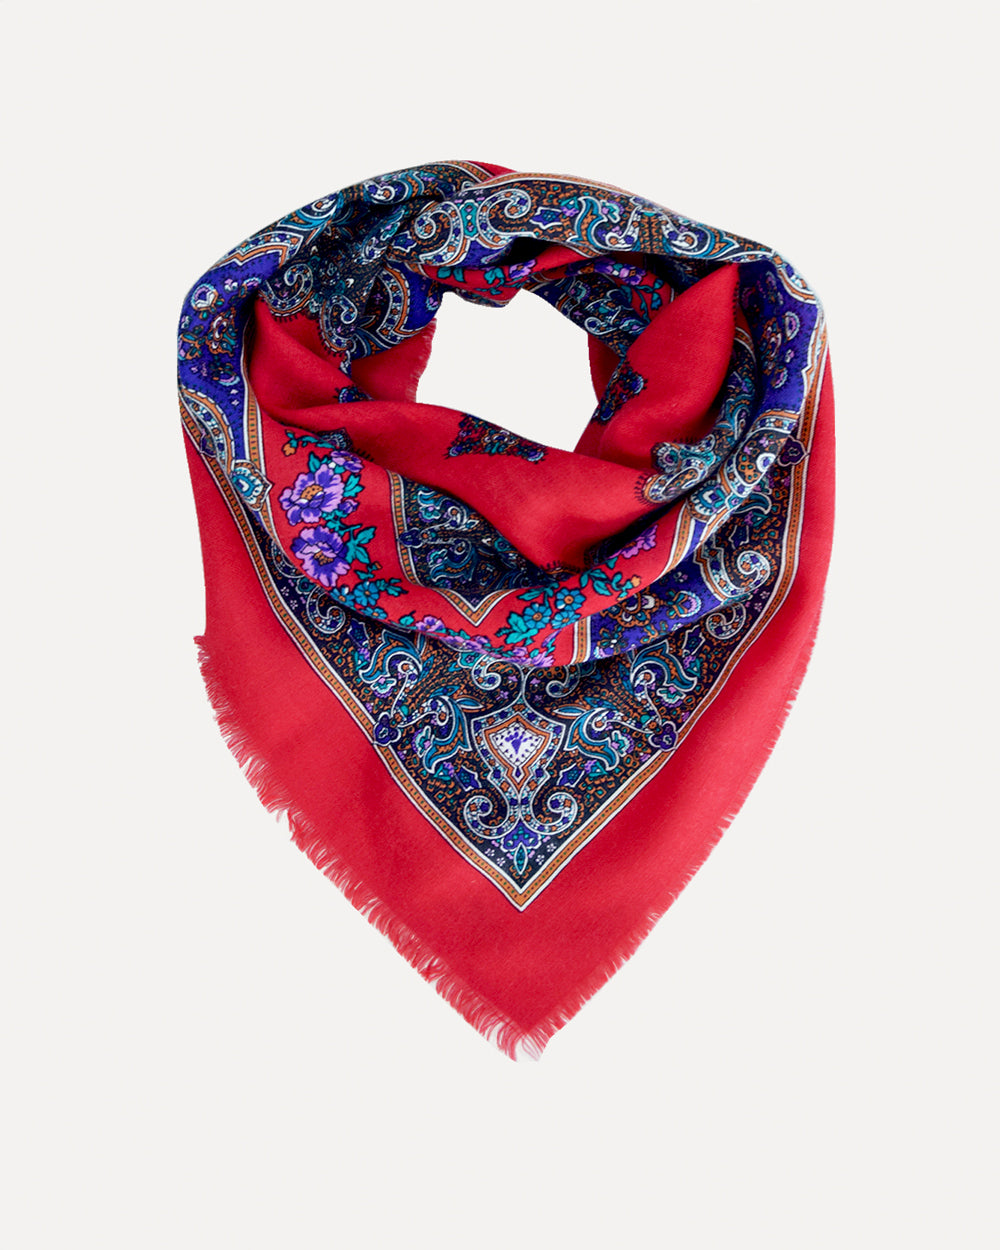 70's Red Paisley Scarf